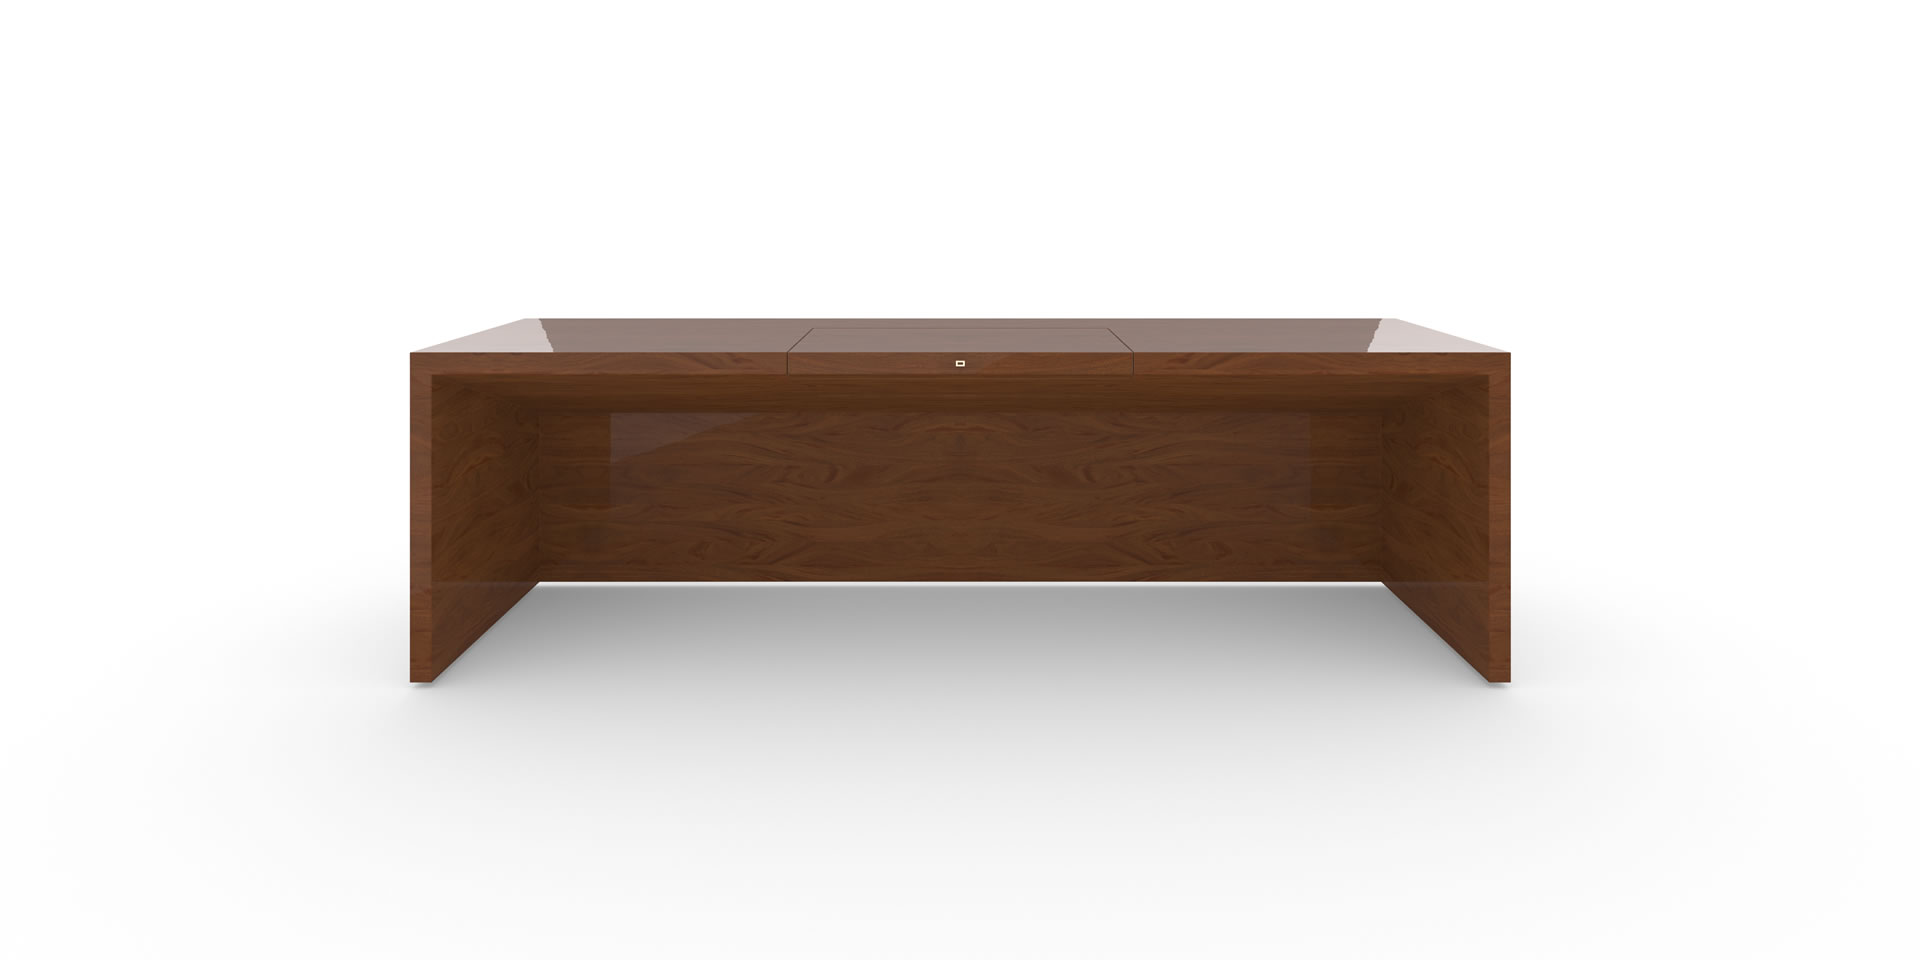 FELIX SCHWAKE DESK II Inside View precious wood mahogany customized bespoke Rueckseite